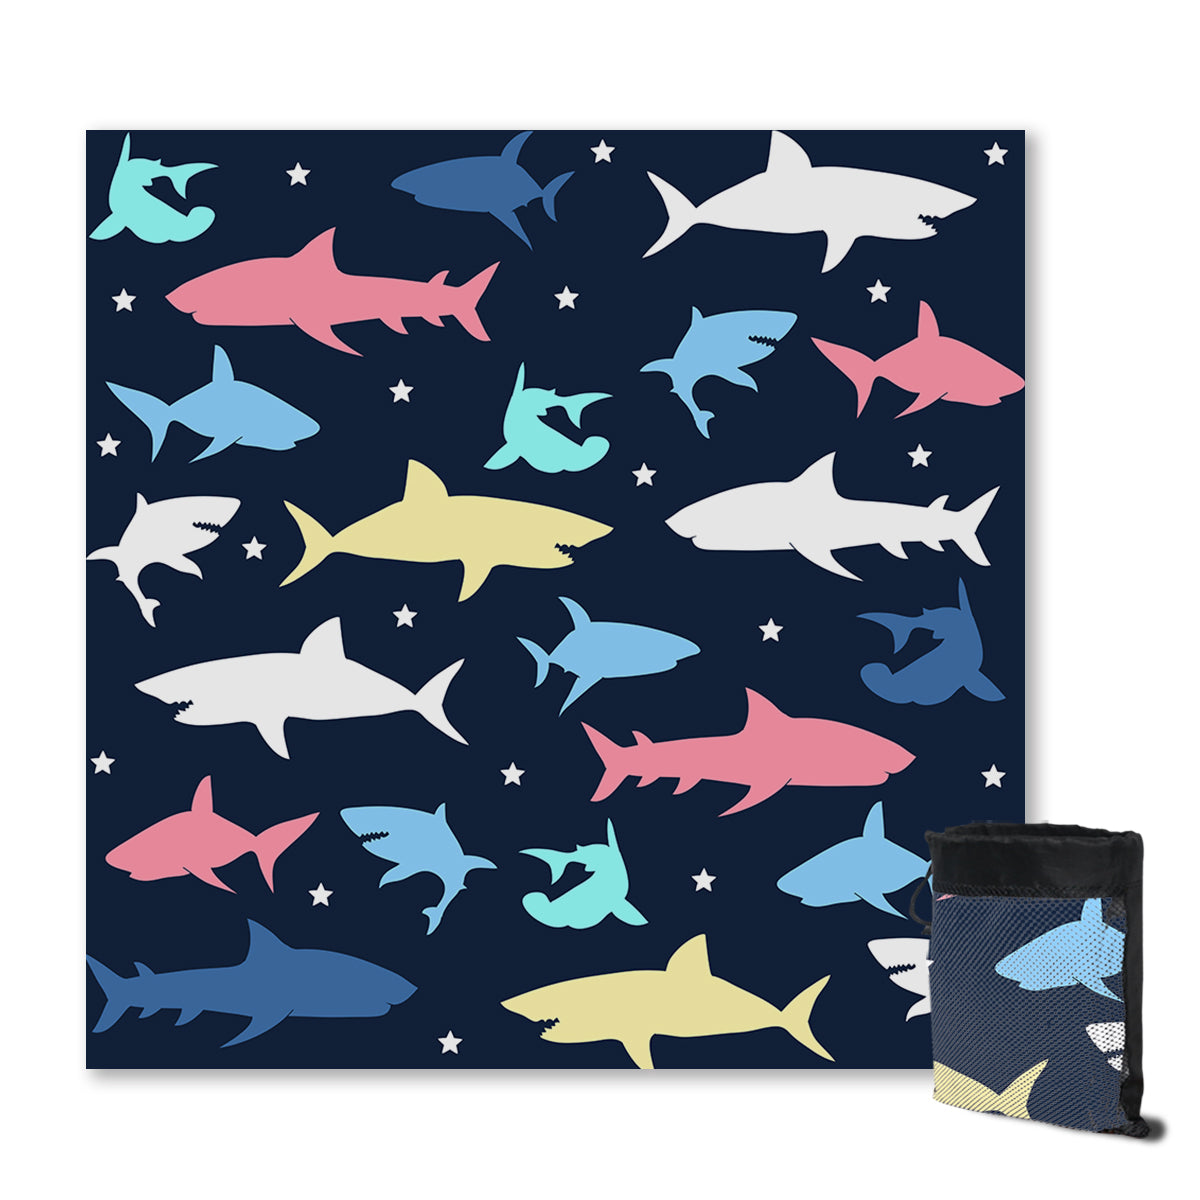 The Shark Disco Sand Free Towel